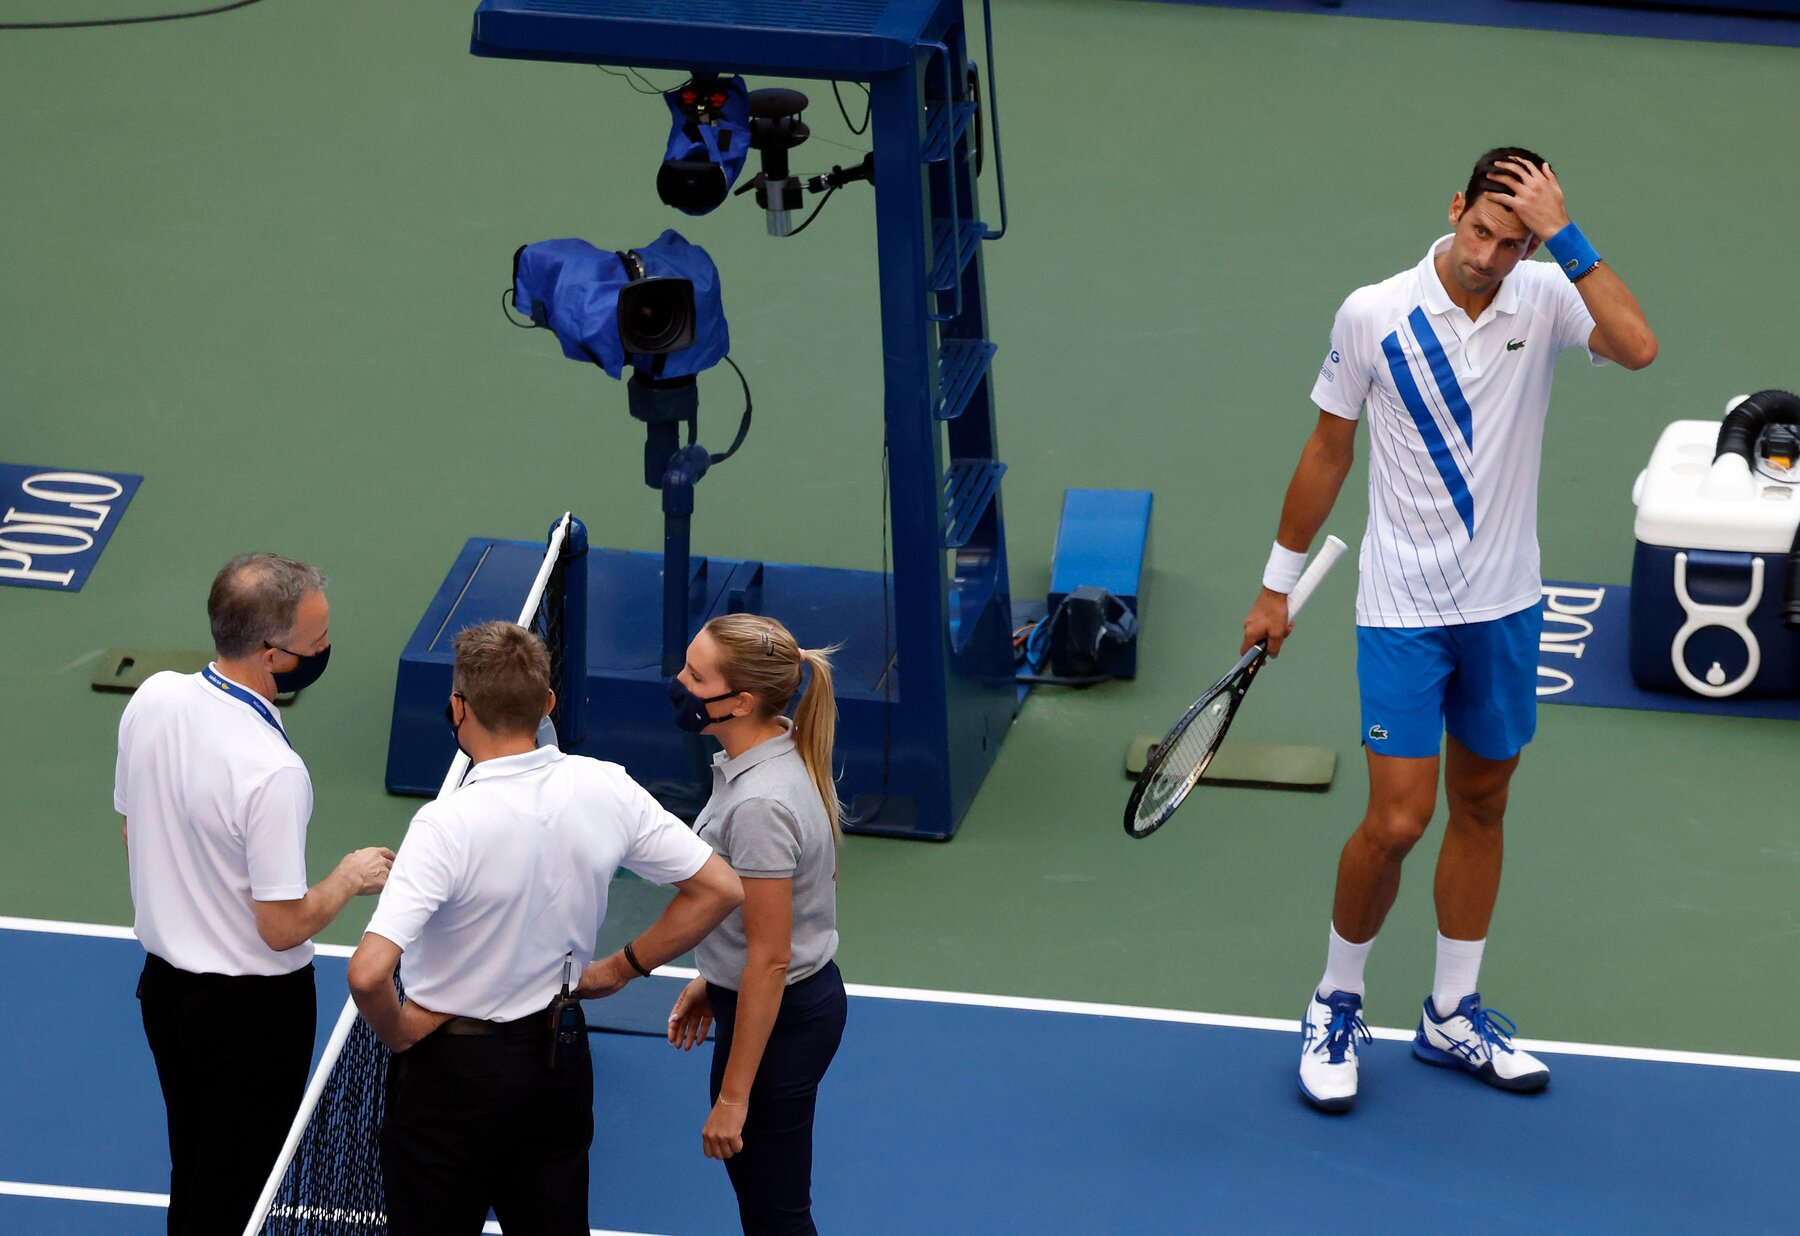 A line judge got arrested for murder charge right before the US open event